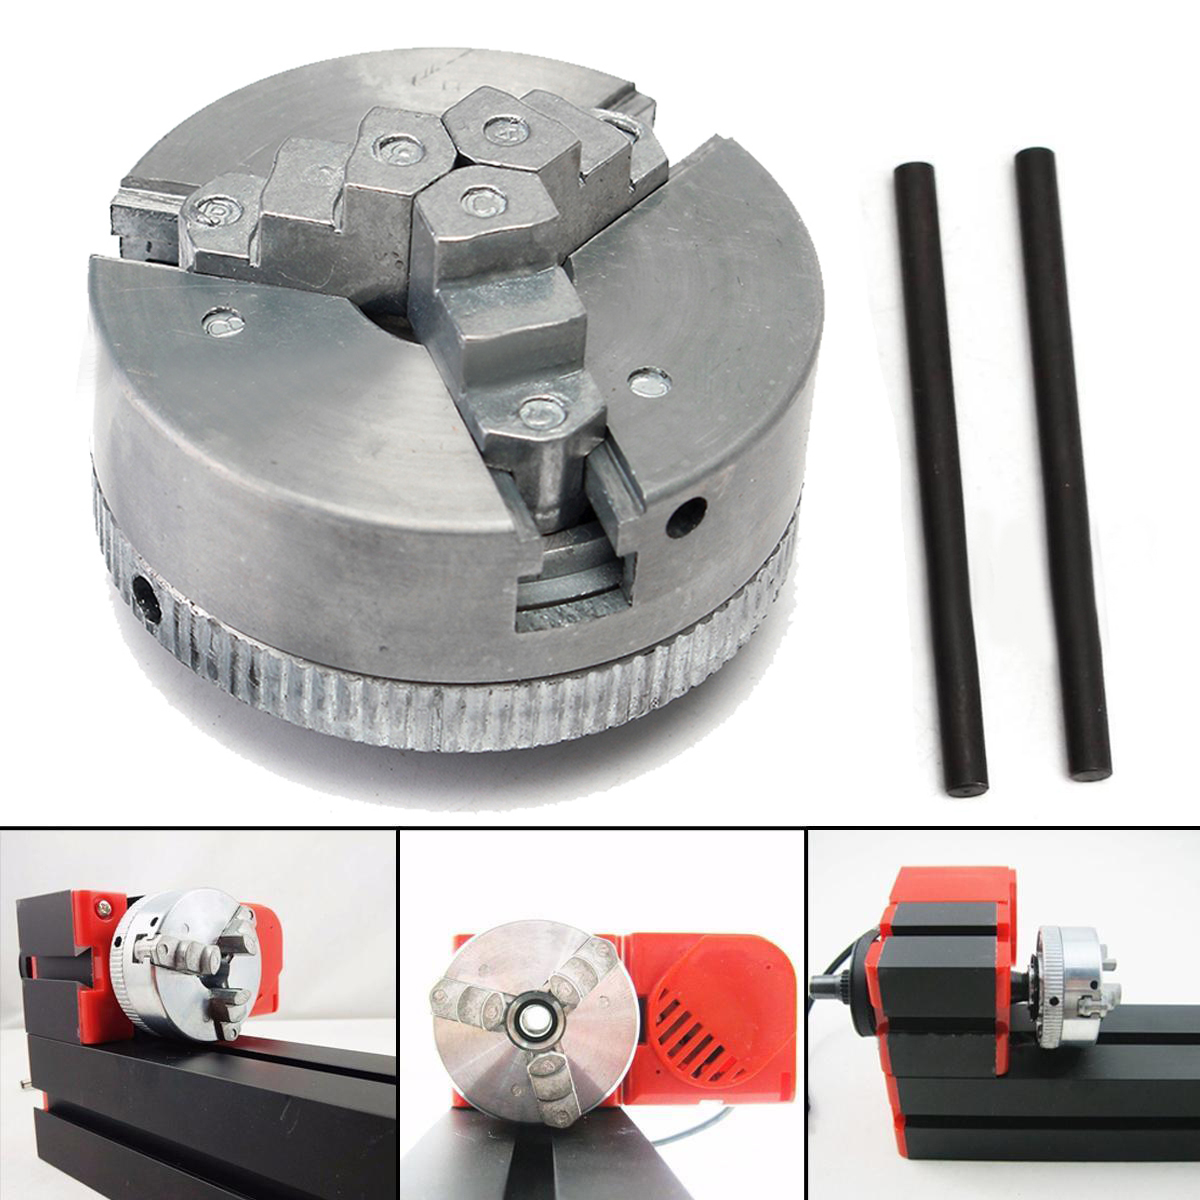 Mayitr 1pc Metal Self Centering Hardened 3 Jaw Lathe Chuck M12x1 45mm + 2pcs Lock Rods 3 3 jaw lathe chuck k11 80 k11 80 80mm manual chuck self centering lathe parts diy metal lathe lathe accessories